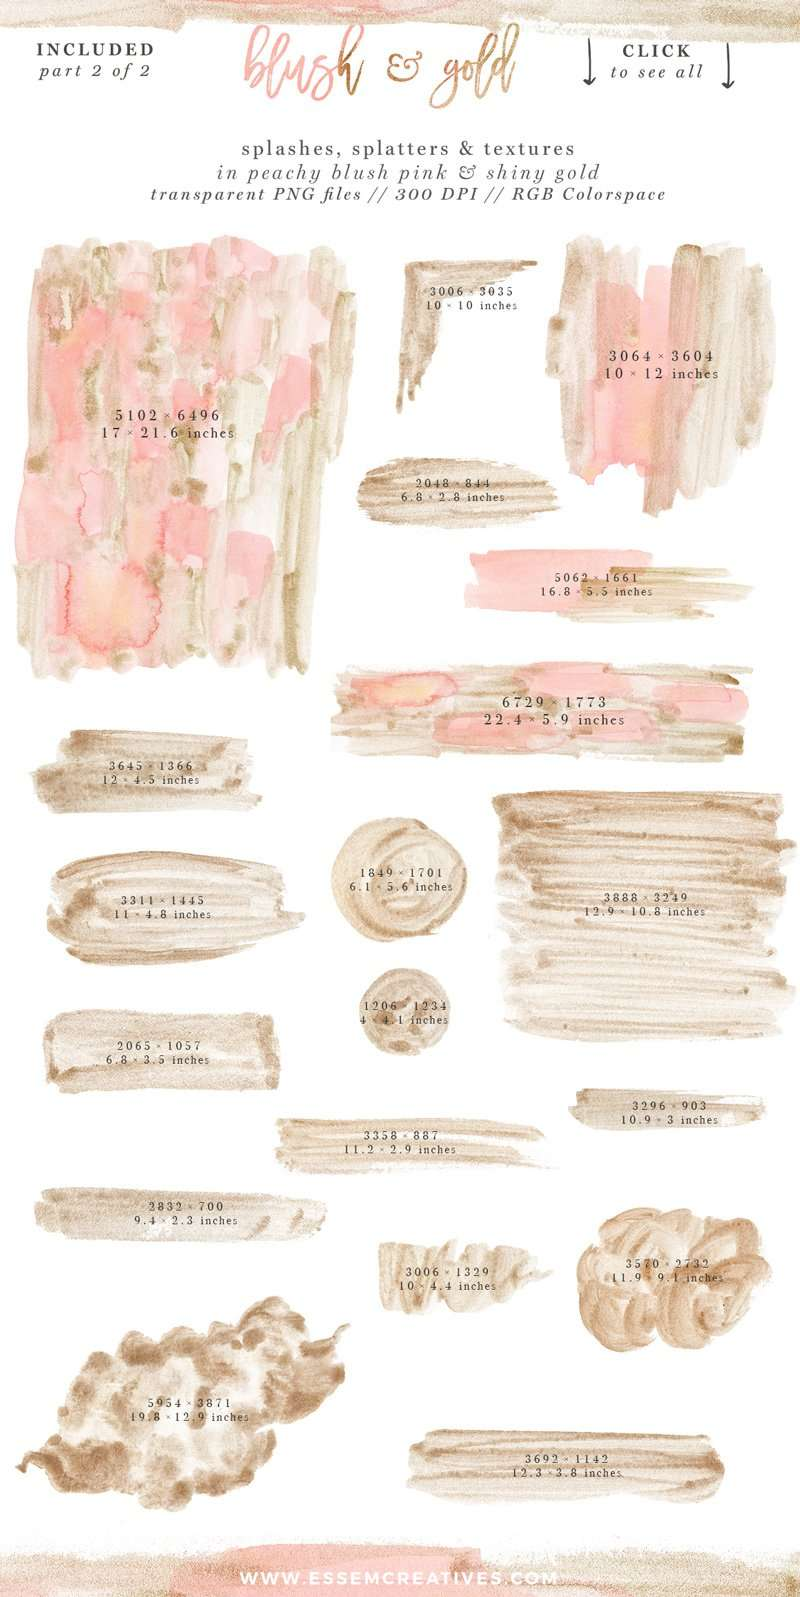 Blush Pink and Gold Watercolor Textures and Clipart for Wedding Invitations, Blush and Gold Branding | Perfect for watercolor blush and gold wedding invitations, save the dates, blush and gold branding, feminine logos for small creative businesses, blush and gold splashes paint strokes and texture clipart, packaging, website headers & banners, DIY crafts projects, and more. Click to check out this design kit which will make all your blush and gold dreams come true>>